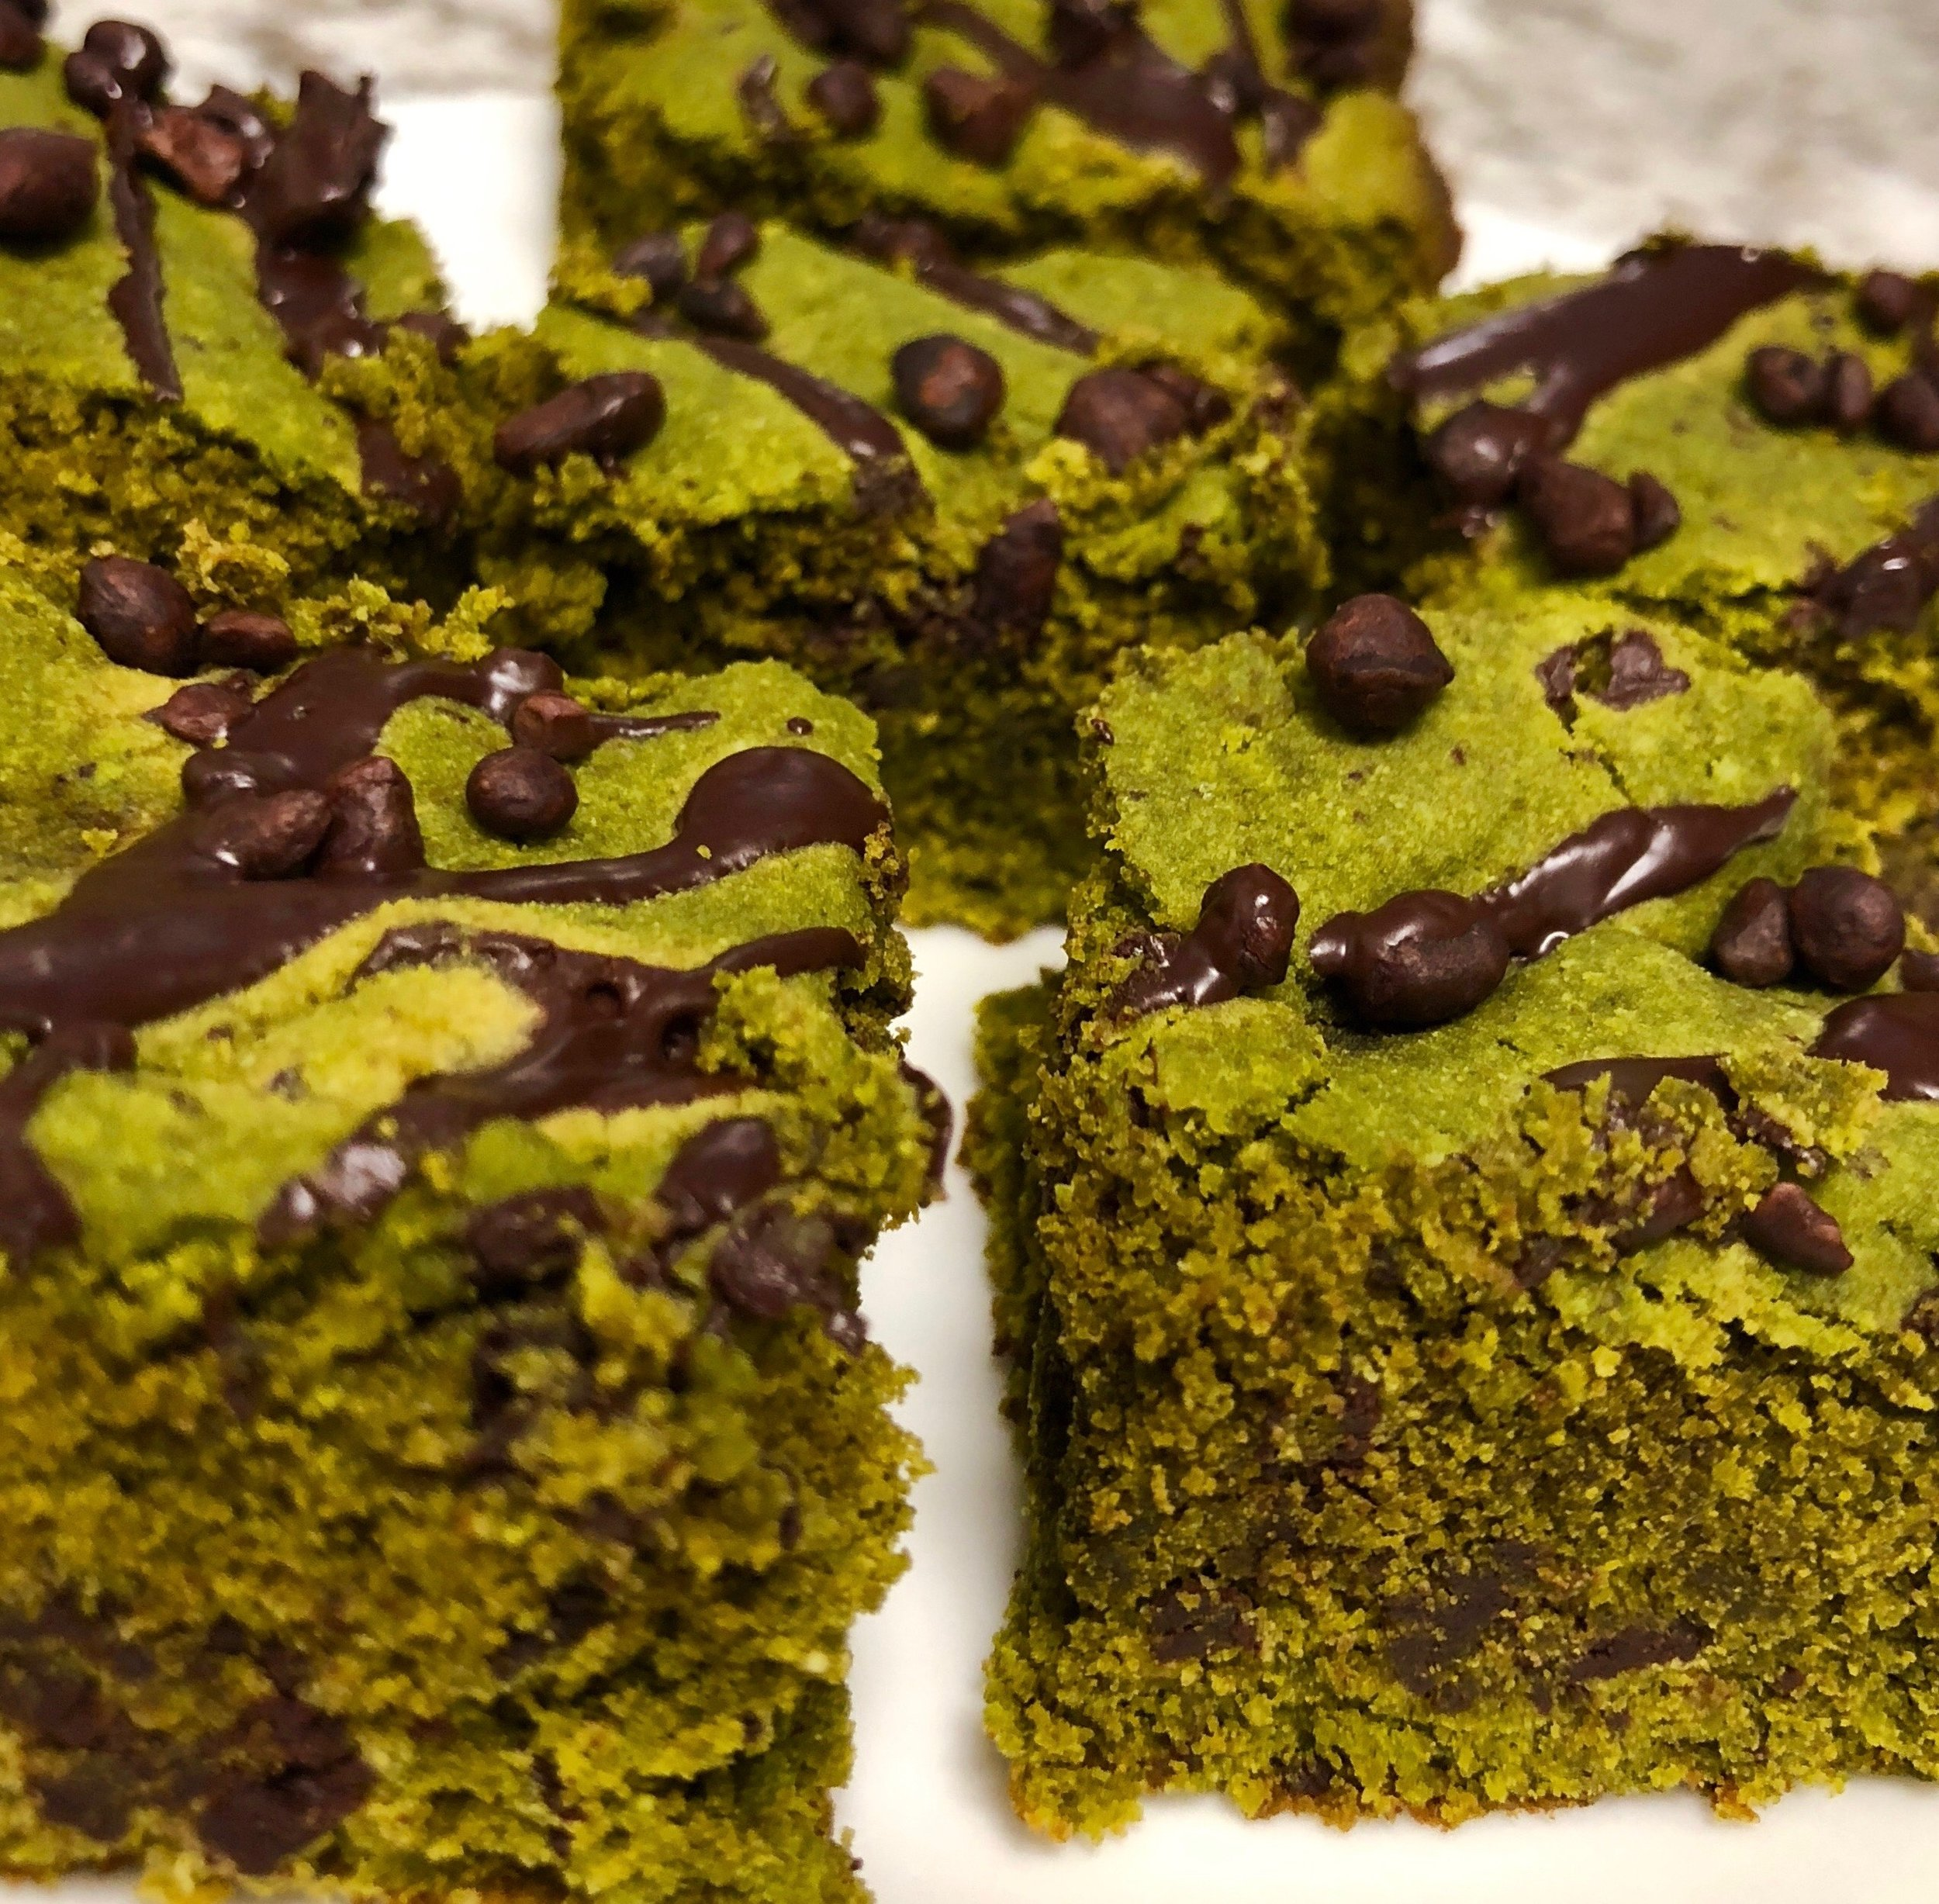 Matcha Mint Brownies    Dry Ingredients:   1/2 cup almond flour  1 cup coconut flour  1/4 cup matcha powder  1/2 tsp baking soda  1/4 tsp salt  1/2 cup dark chocolate chips, or chopped up dark chocolate chunks   Wet Ingredients:   1/2 cup butter (softened)  2 eggs  2 tbsp coconut oil  3 tbsp agave syrup  1/2 tsp vanilla extract  1 tsp peppermint flavor (I used Frontier CO-OP brand)   Toppings:   2 oz dark chocolate (85% - 90%)  1/4 cup cacao nibs     Directions:   1. Pre-heat the oven to 350 degrees °F. Grease an 8X8 pan and set aside.  2. In a large bowl combine dry ingredients, add in wet ingredients and mix until well combined. Add in the chocolate chips at the end.  3. Pour batter into greased pan and bake for 15-18 minutes, or until a toothpick comes out clean. Let cool on a baking rack.  4. Melt the dark chocolate over low heat.  5. Once cooled, drizzle chocolate over brownies and sprinkle with cacao nibs.